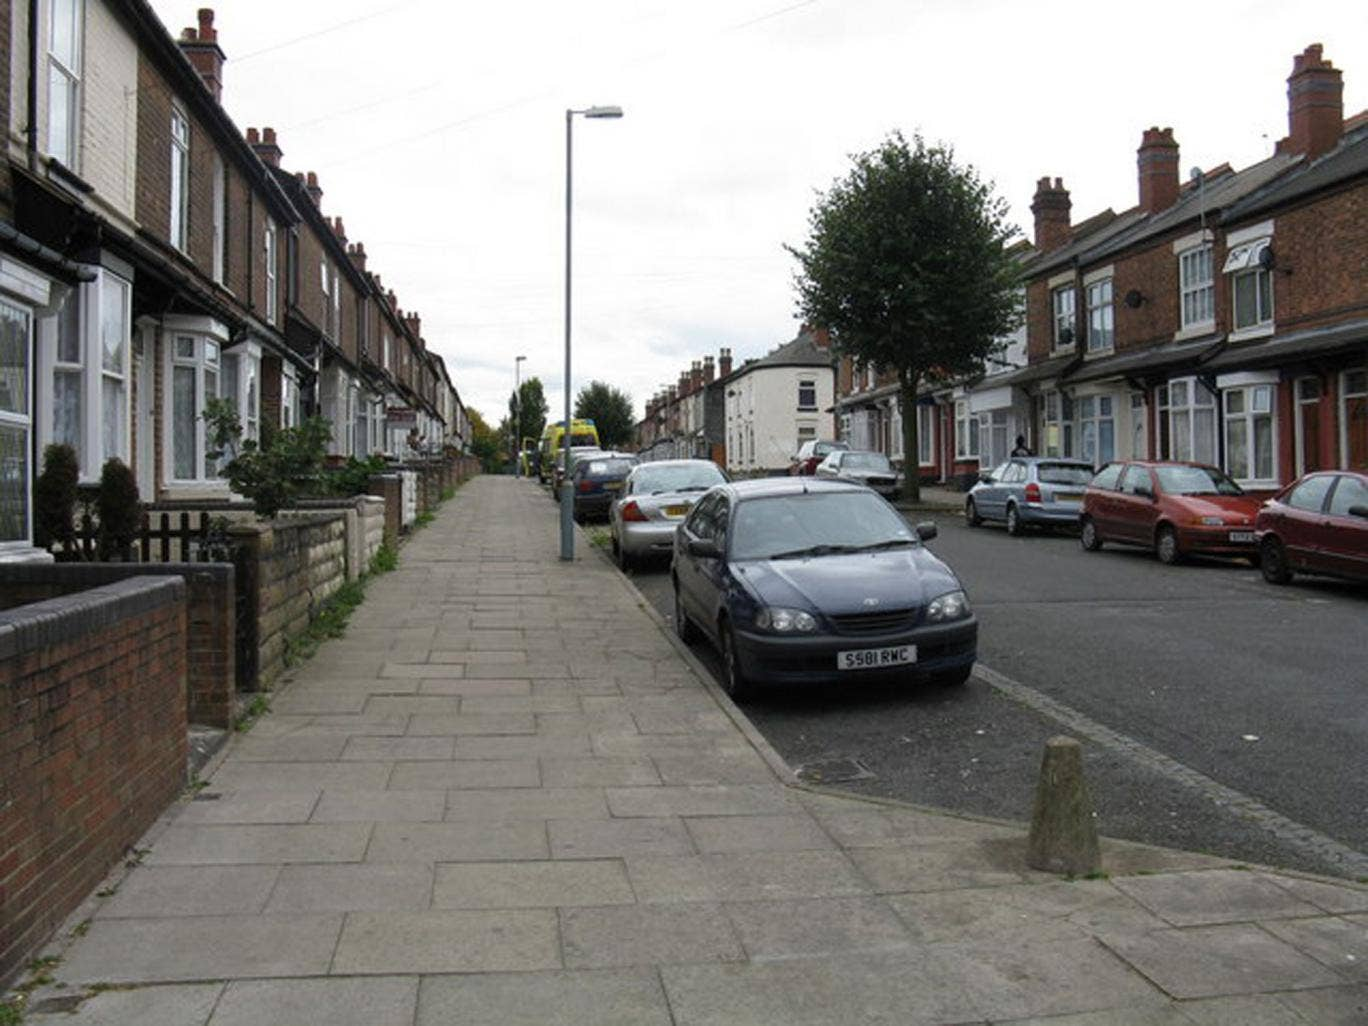 James Turner Street in Birmingham, the setting for Channel 4's documentary series 'Benefits Street'